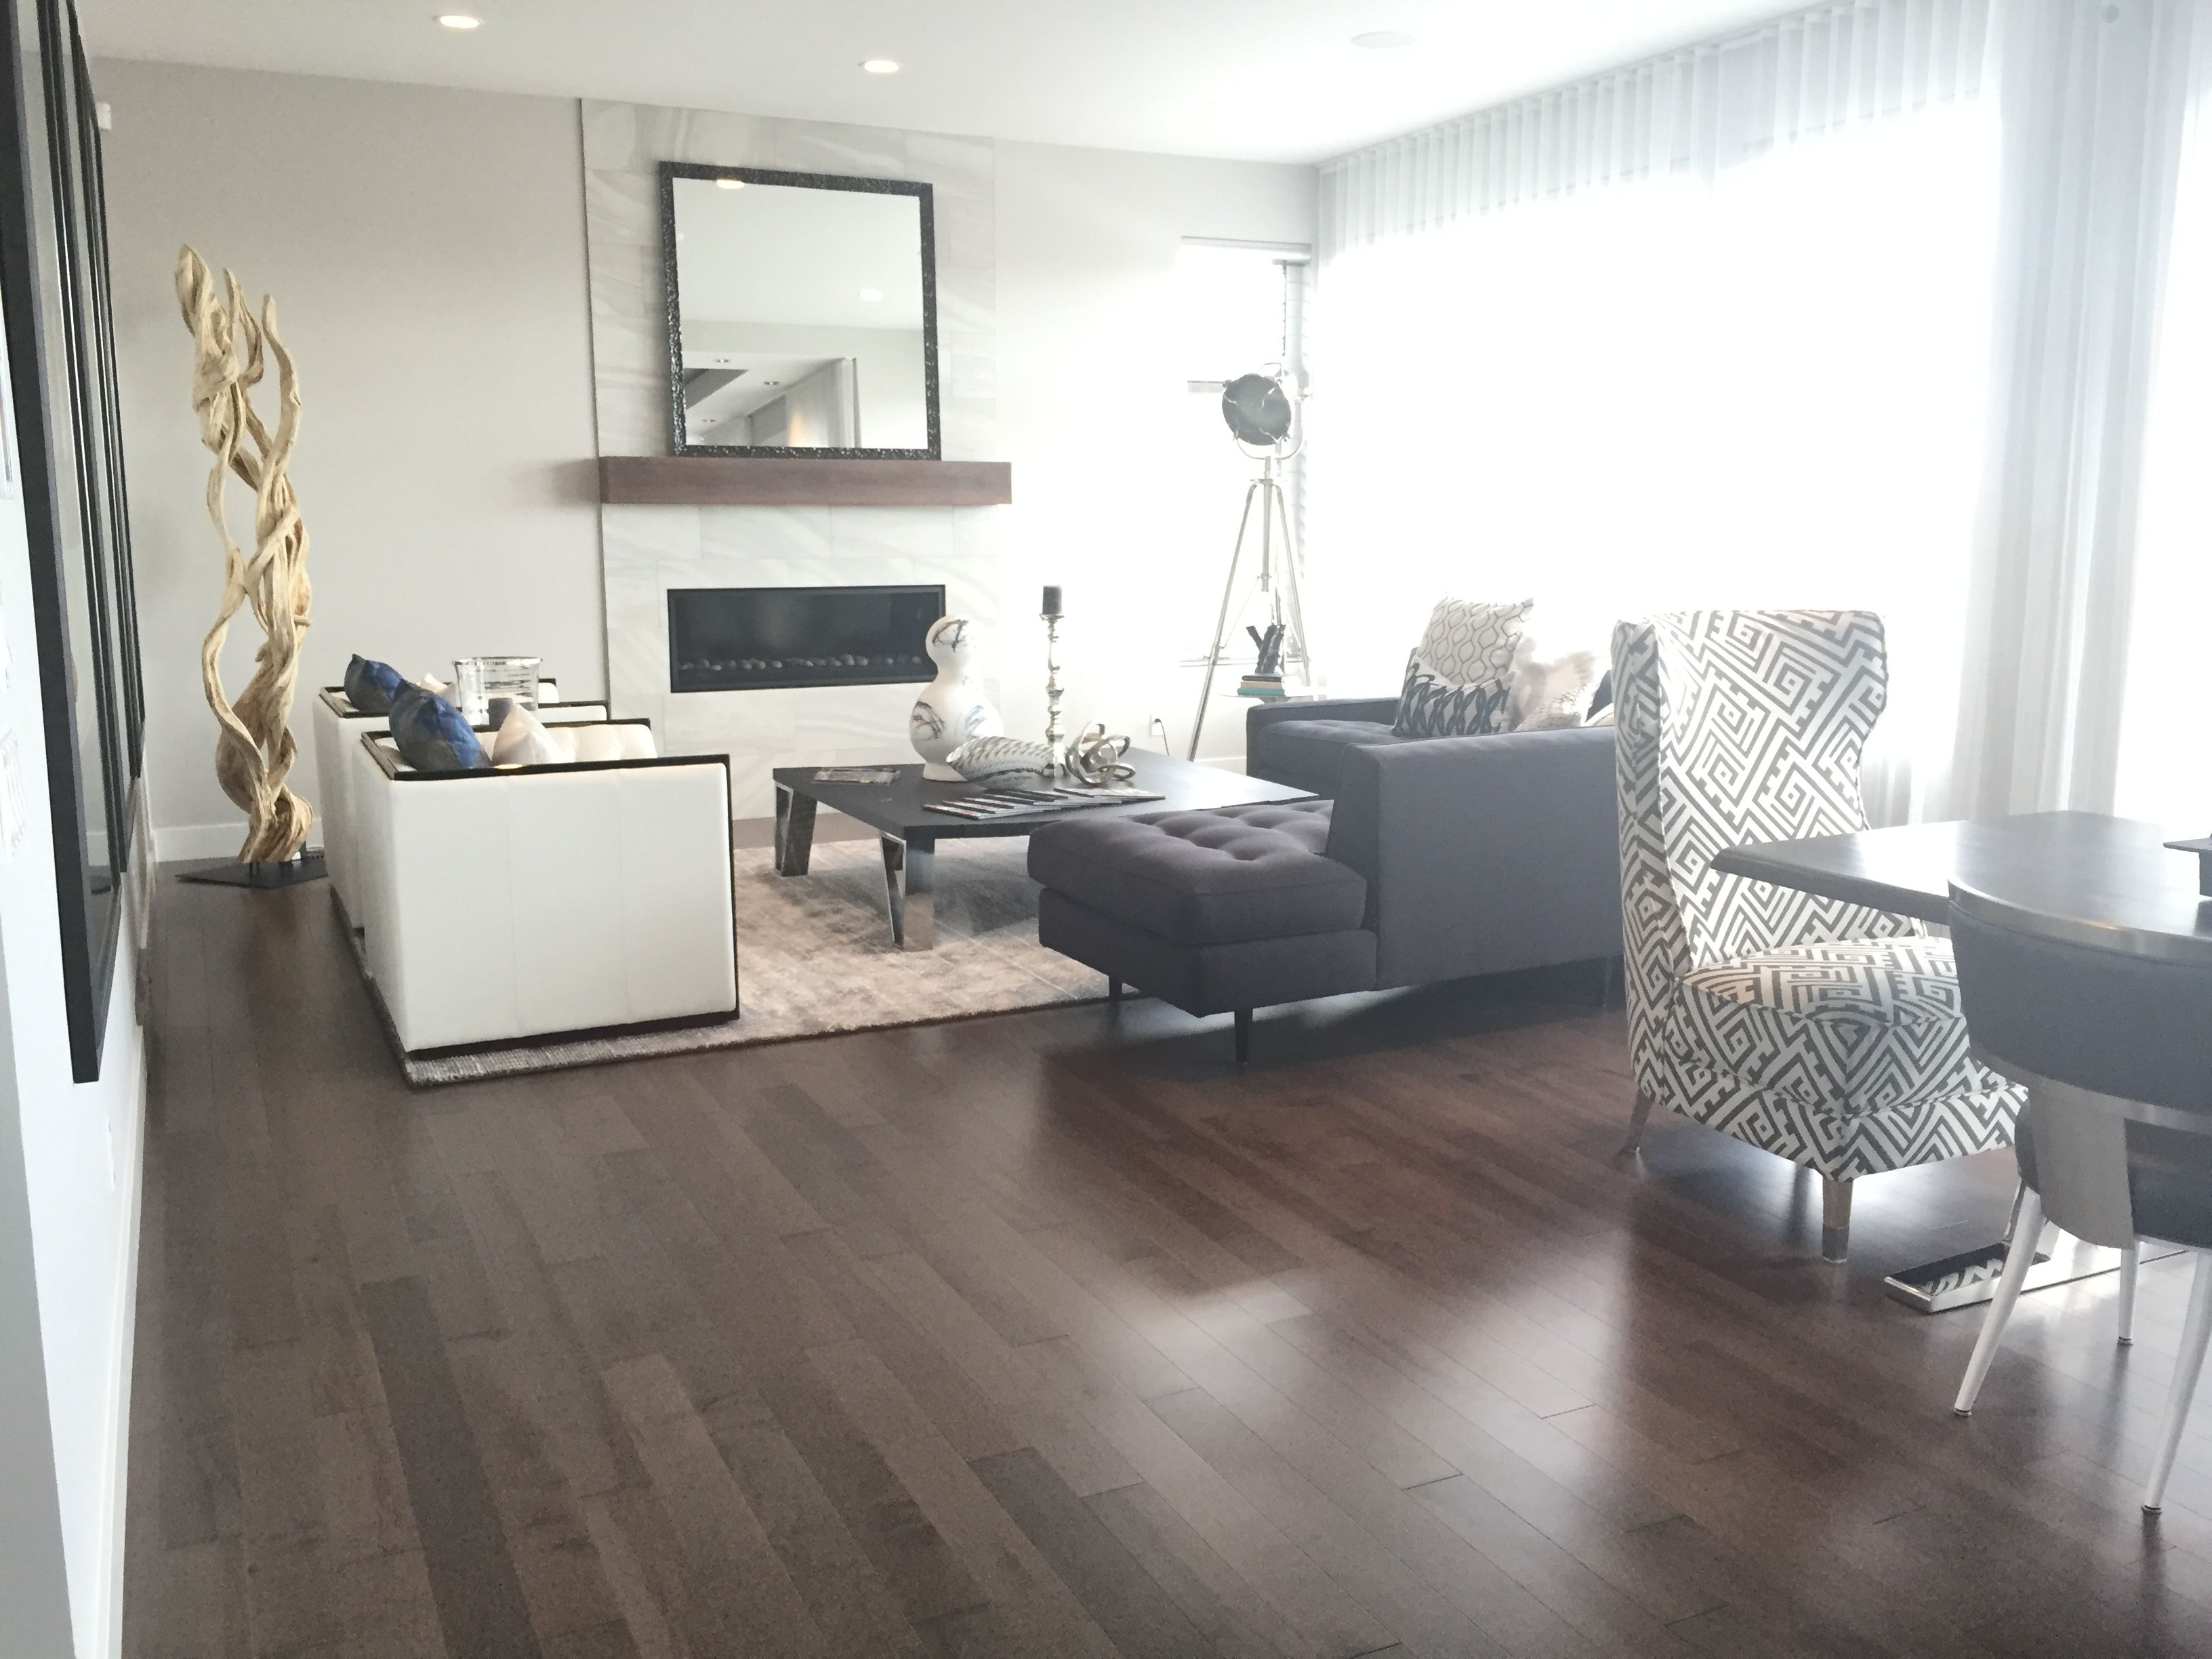 Beautiful Living Room From The Cantata Showhome Featuring Lauzons Smokey Grey Hard Maple Hardwood Flooring